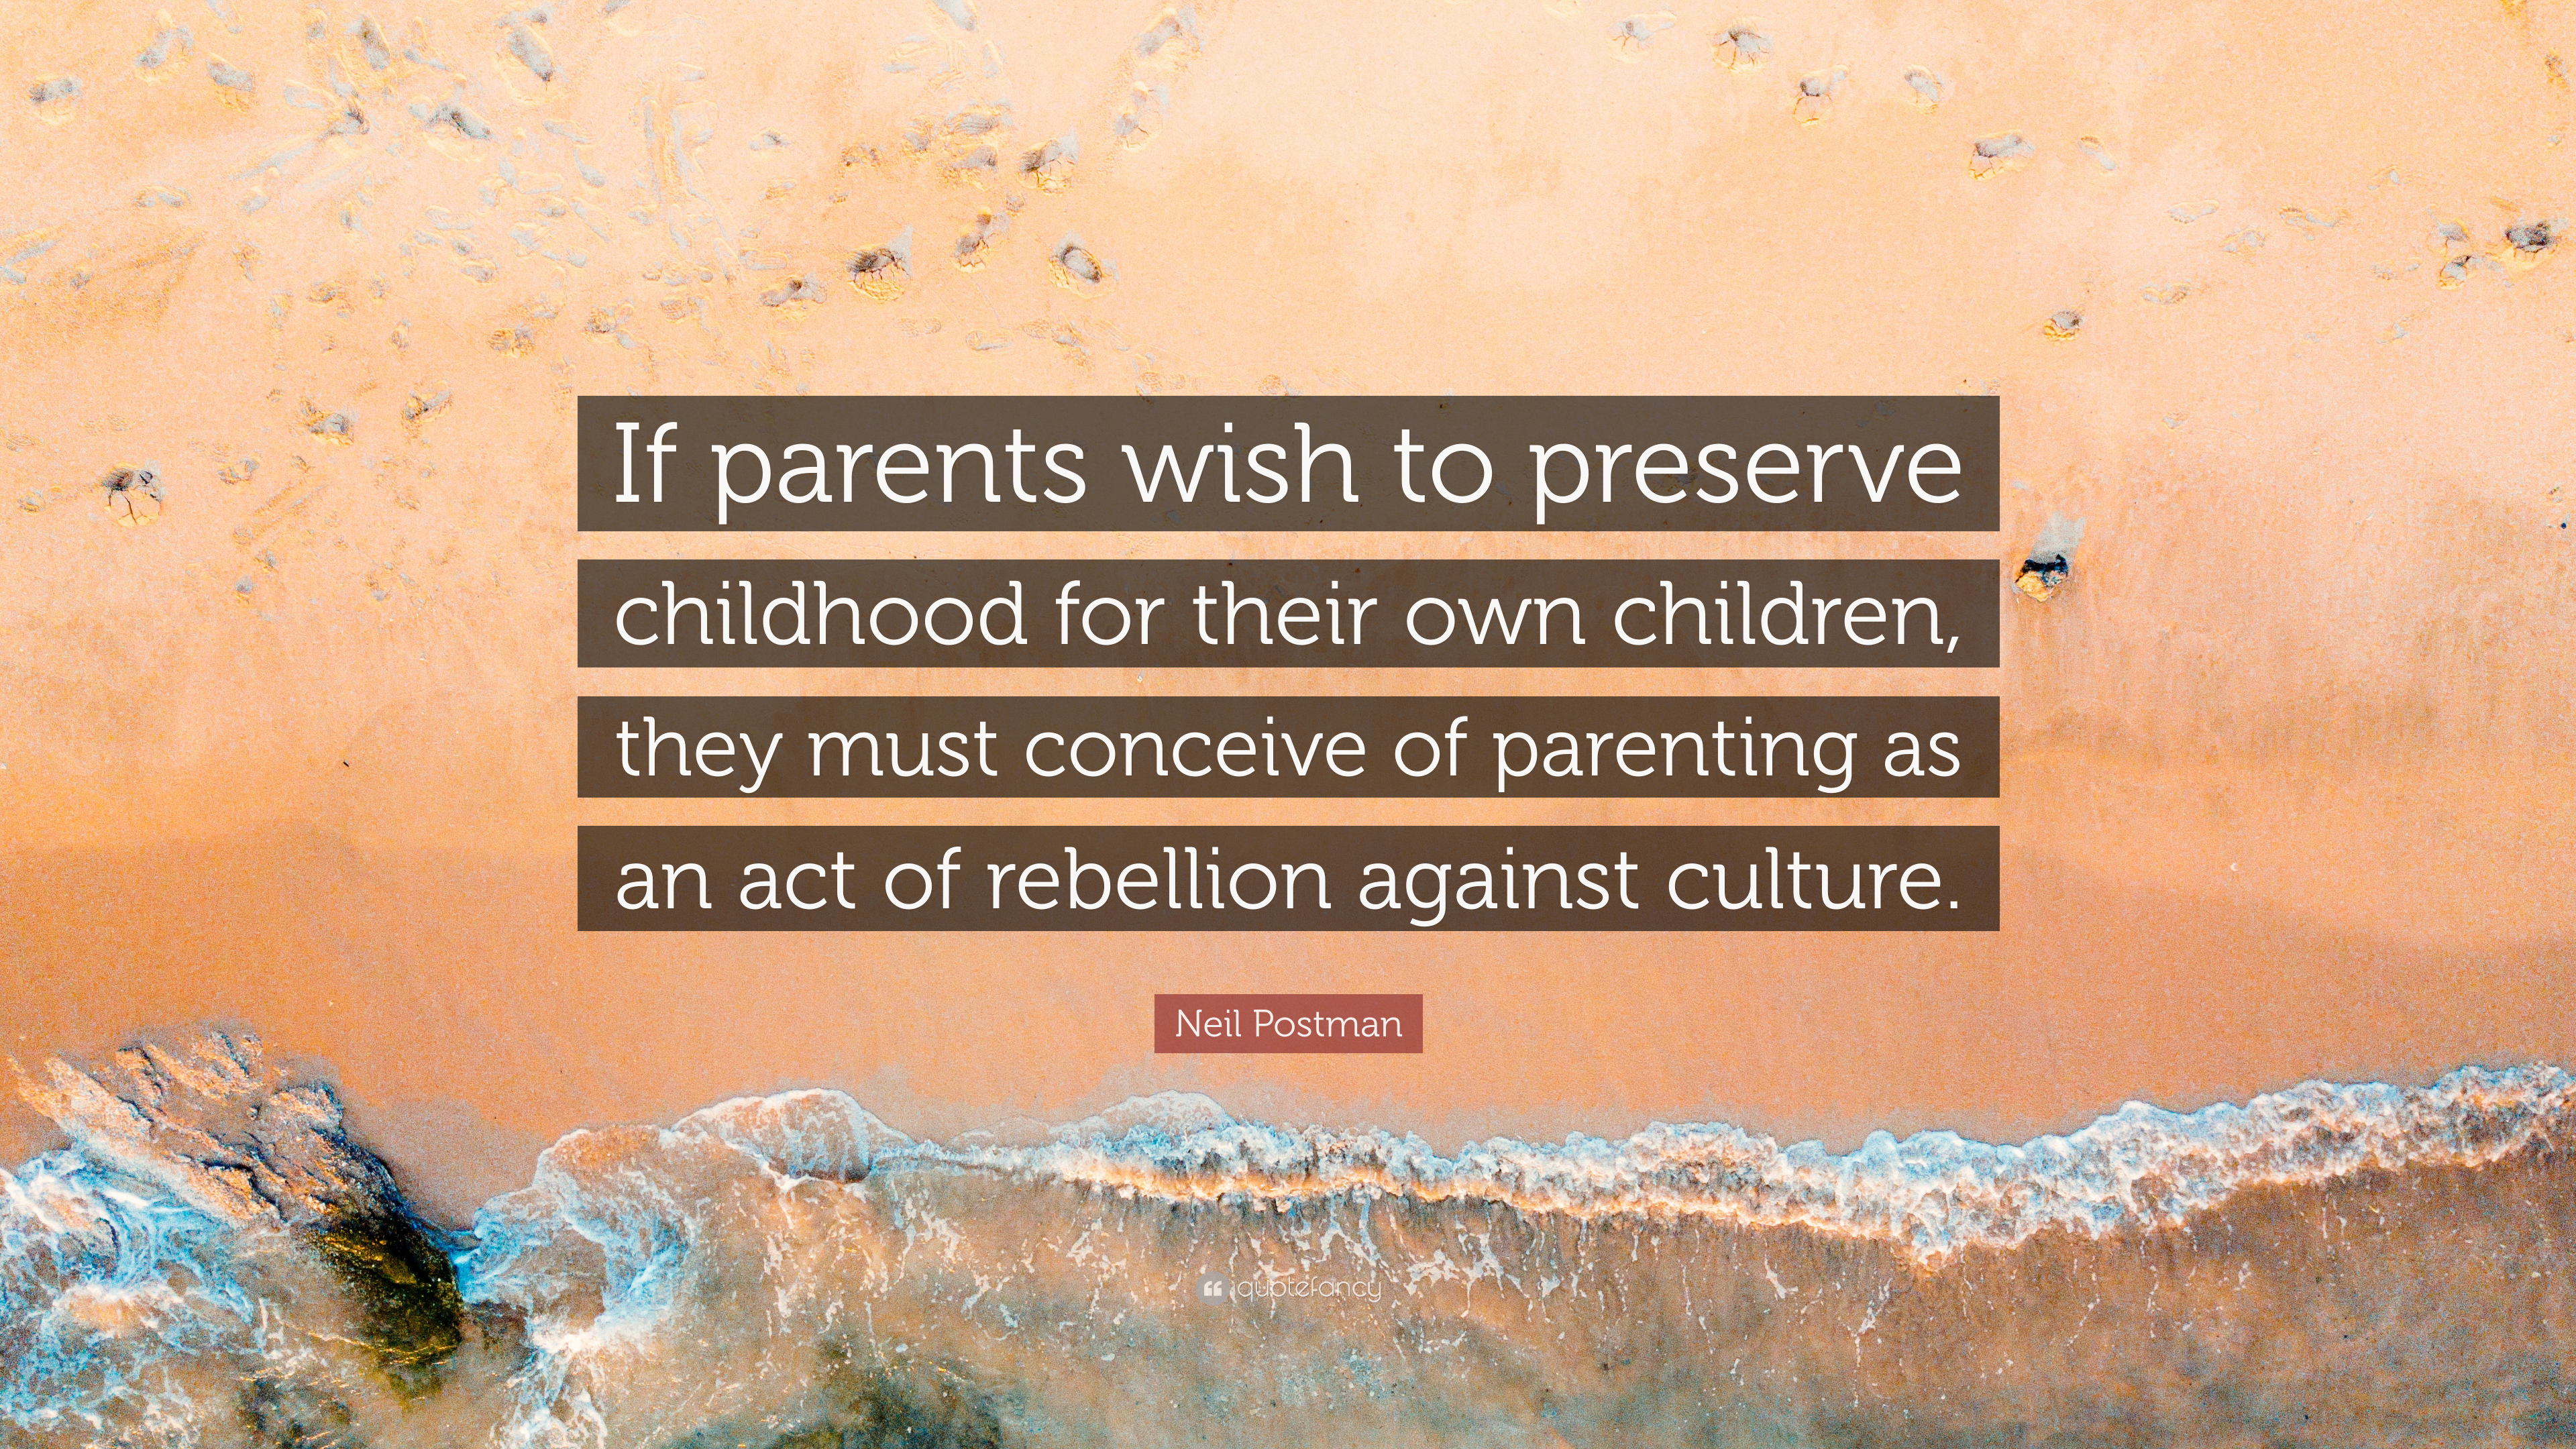 5241030-Neil-Postman-Quote-If-parents-wish-to-preserve-childhood-for-their.jpg